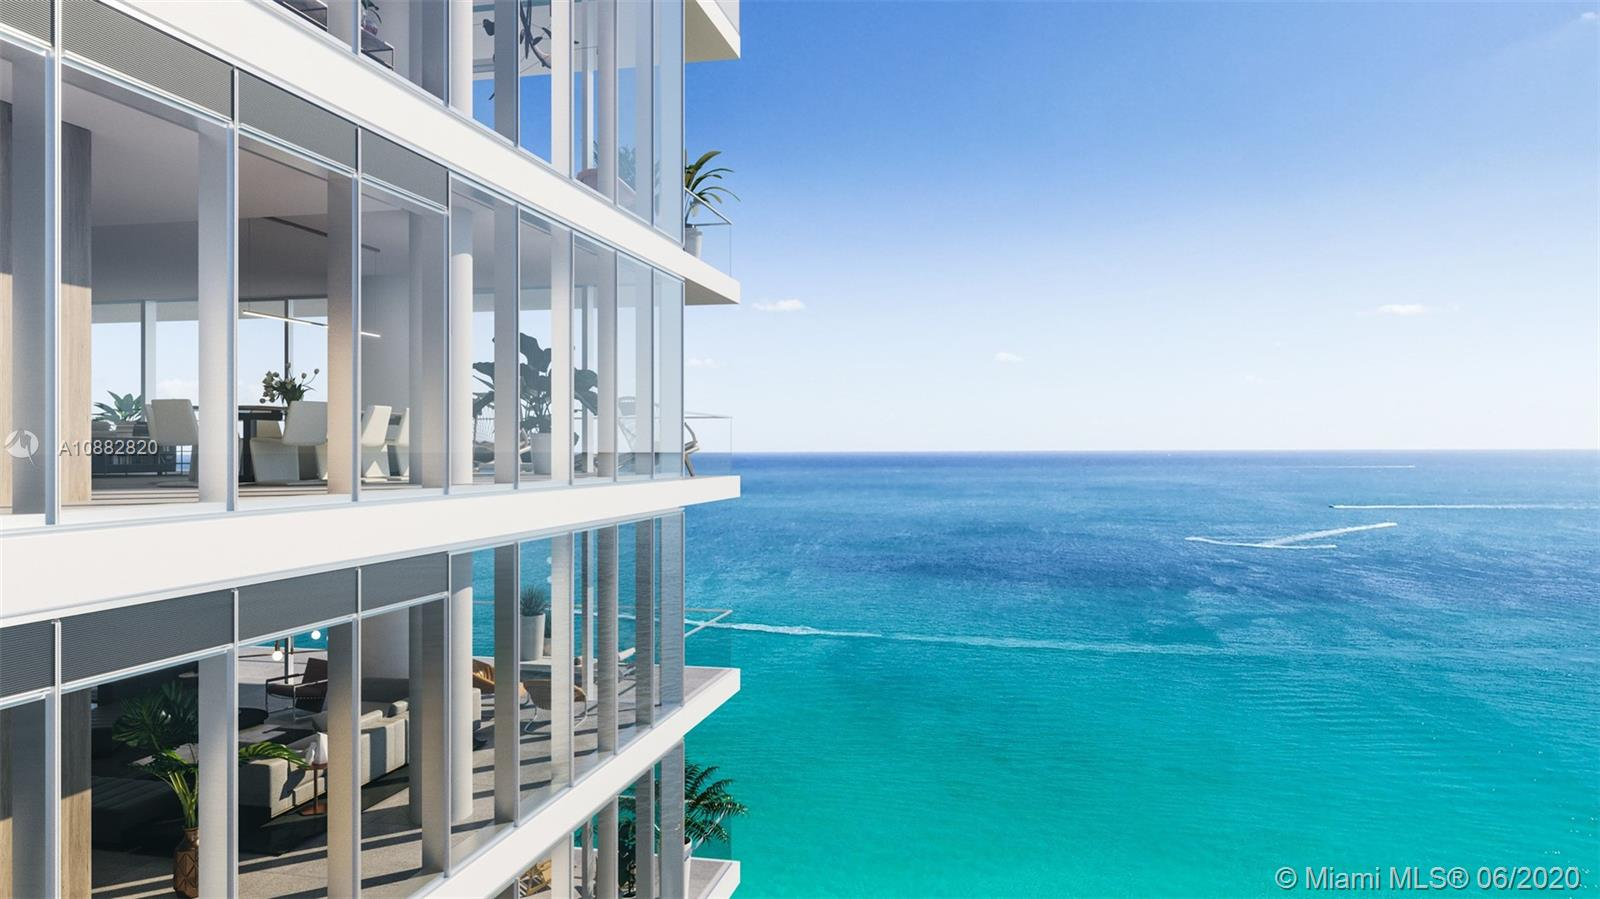 Floor to ceiling glass windows to enjoy endless ocean and intracoastal views